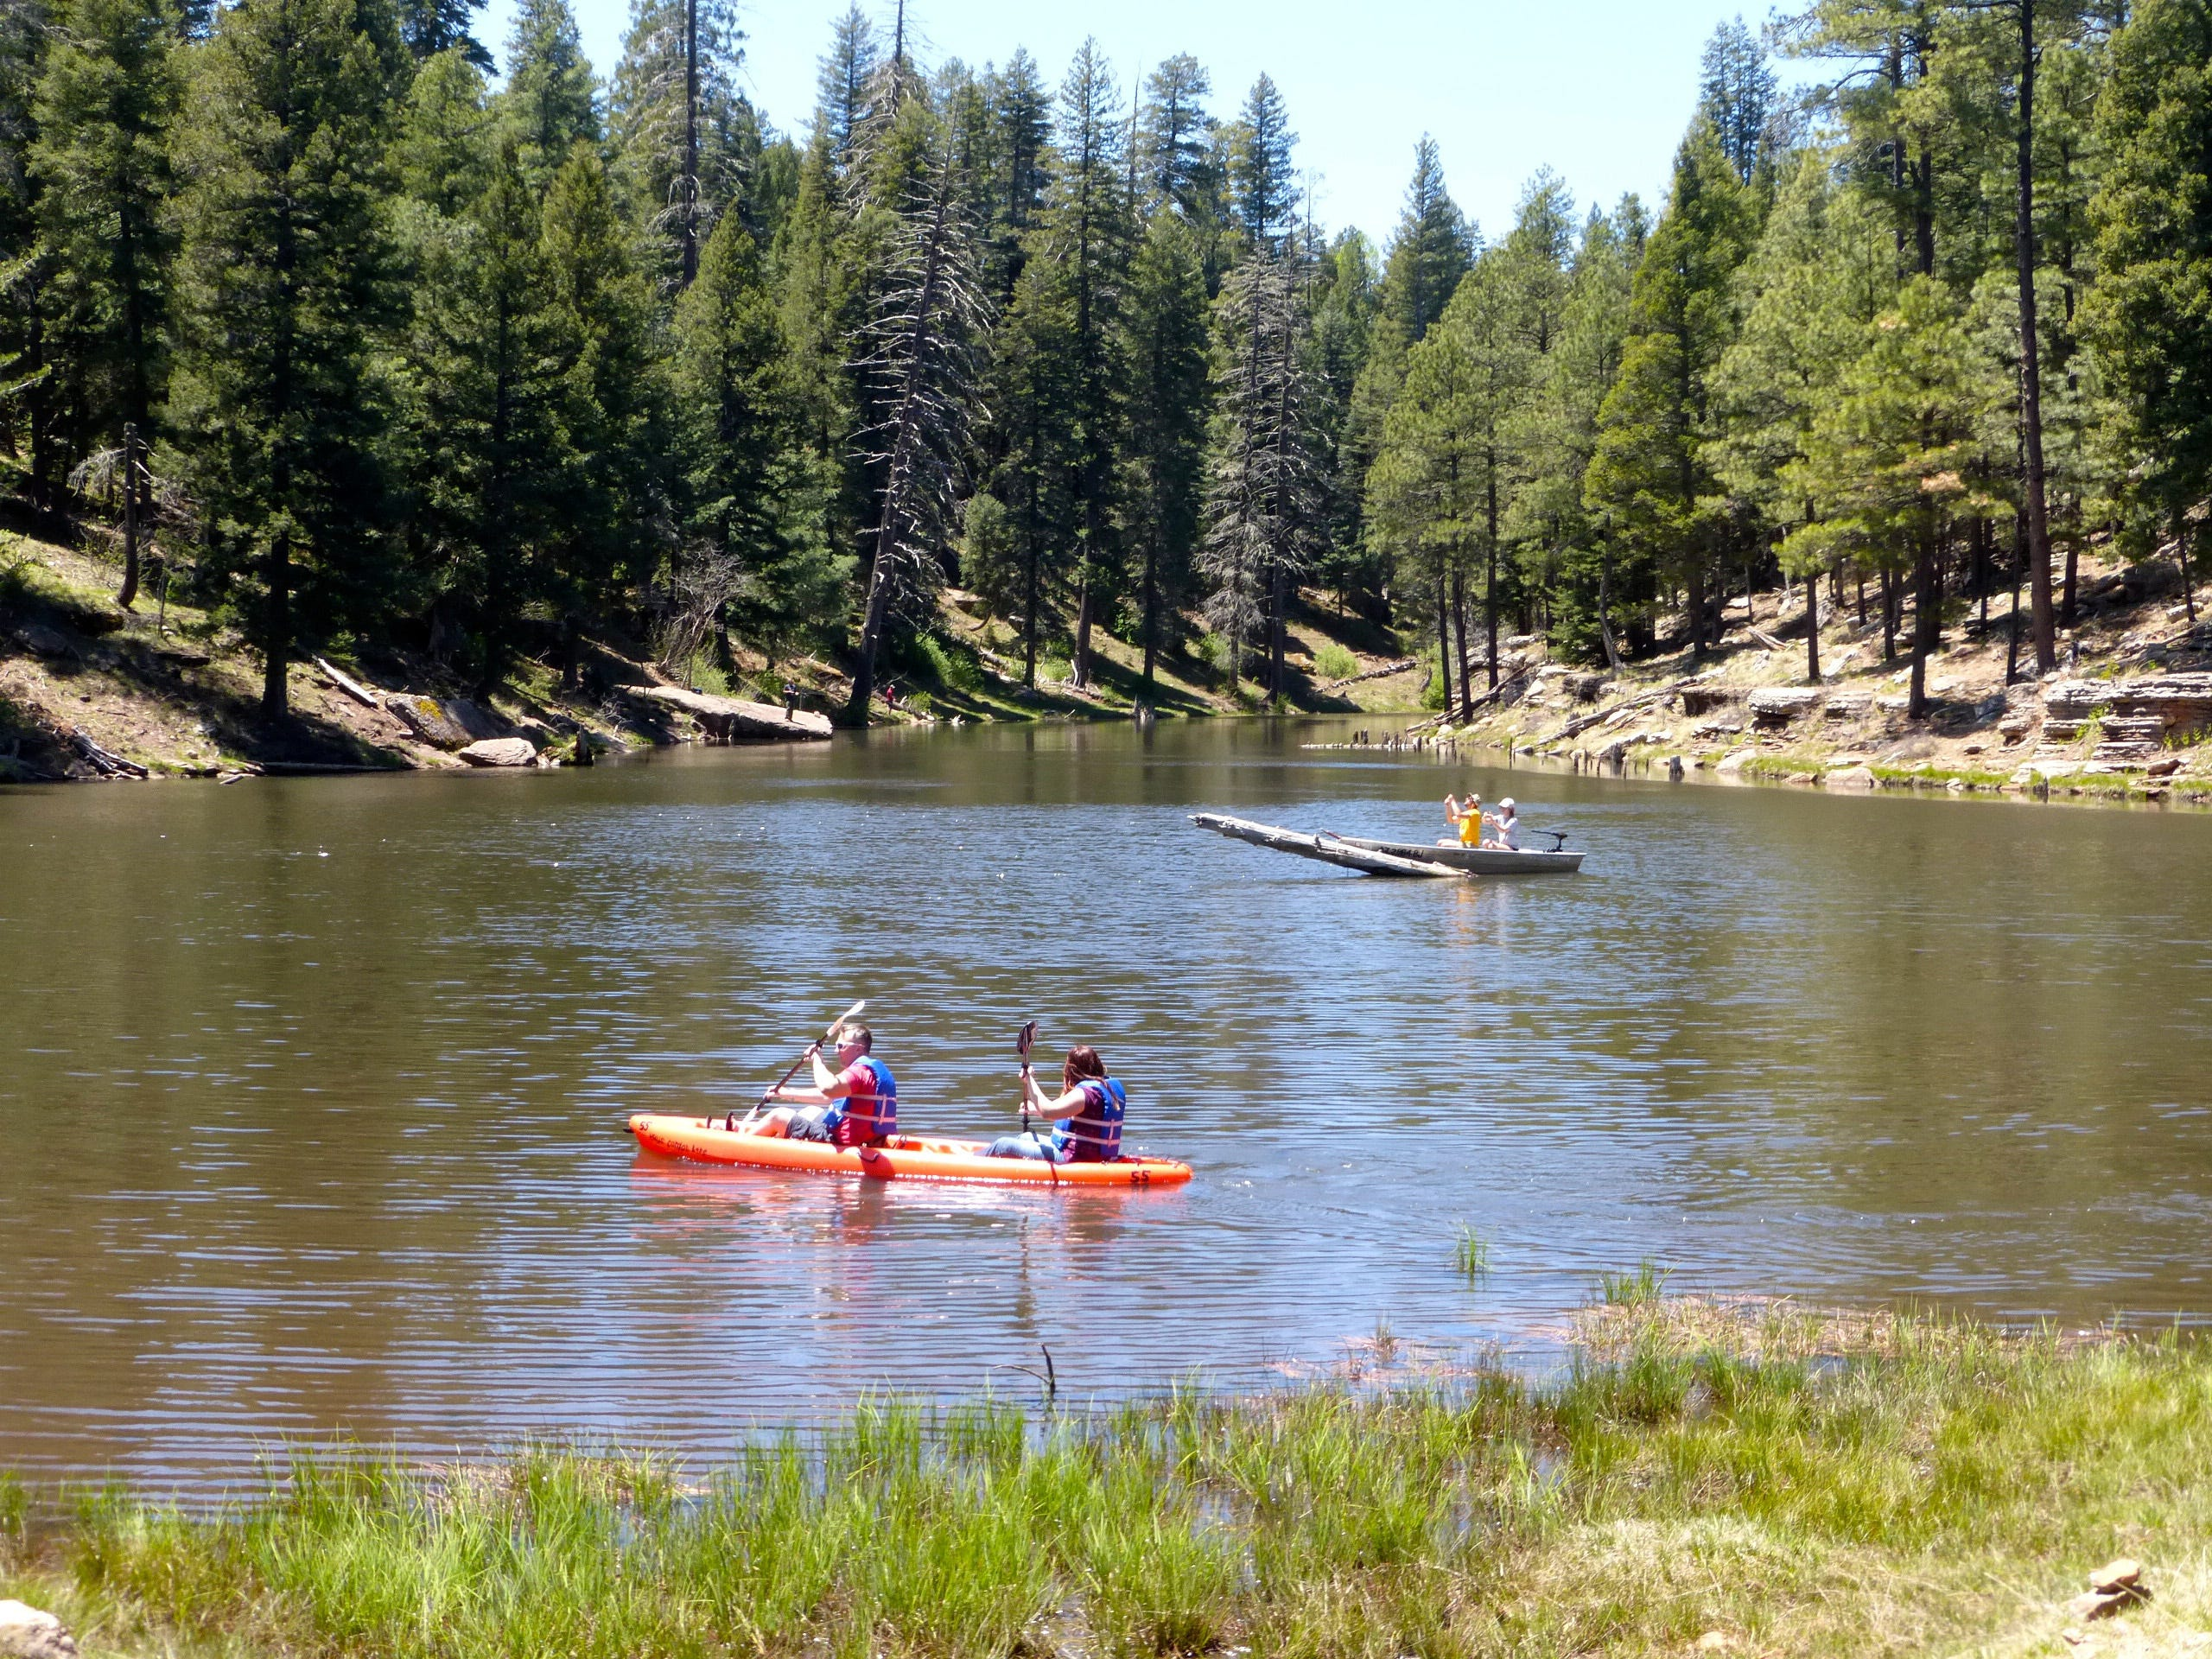 Rose canyon lake campground fees with hookups